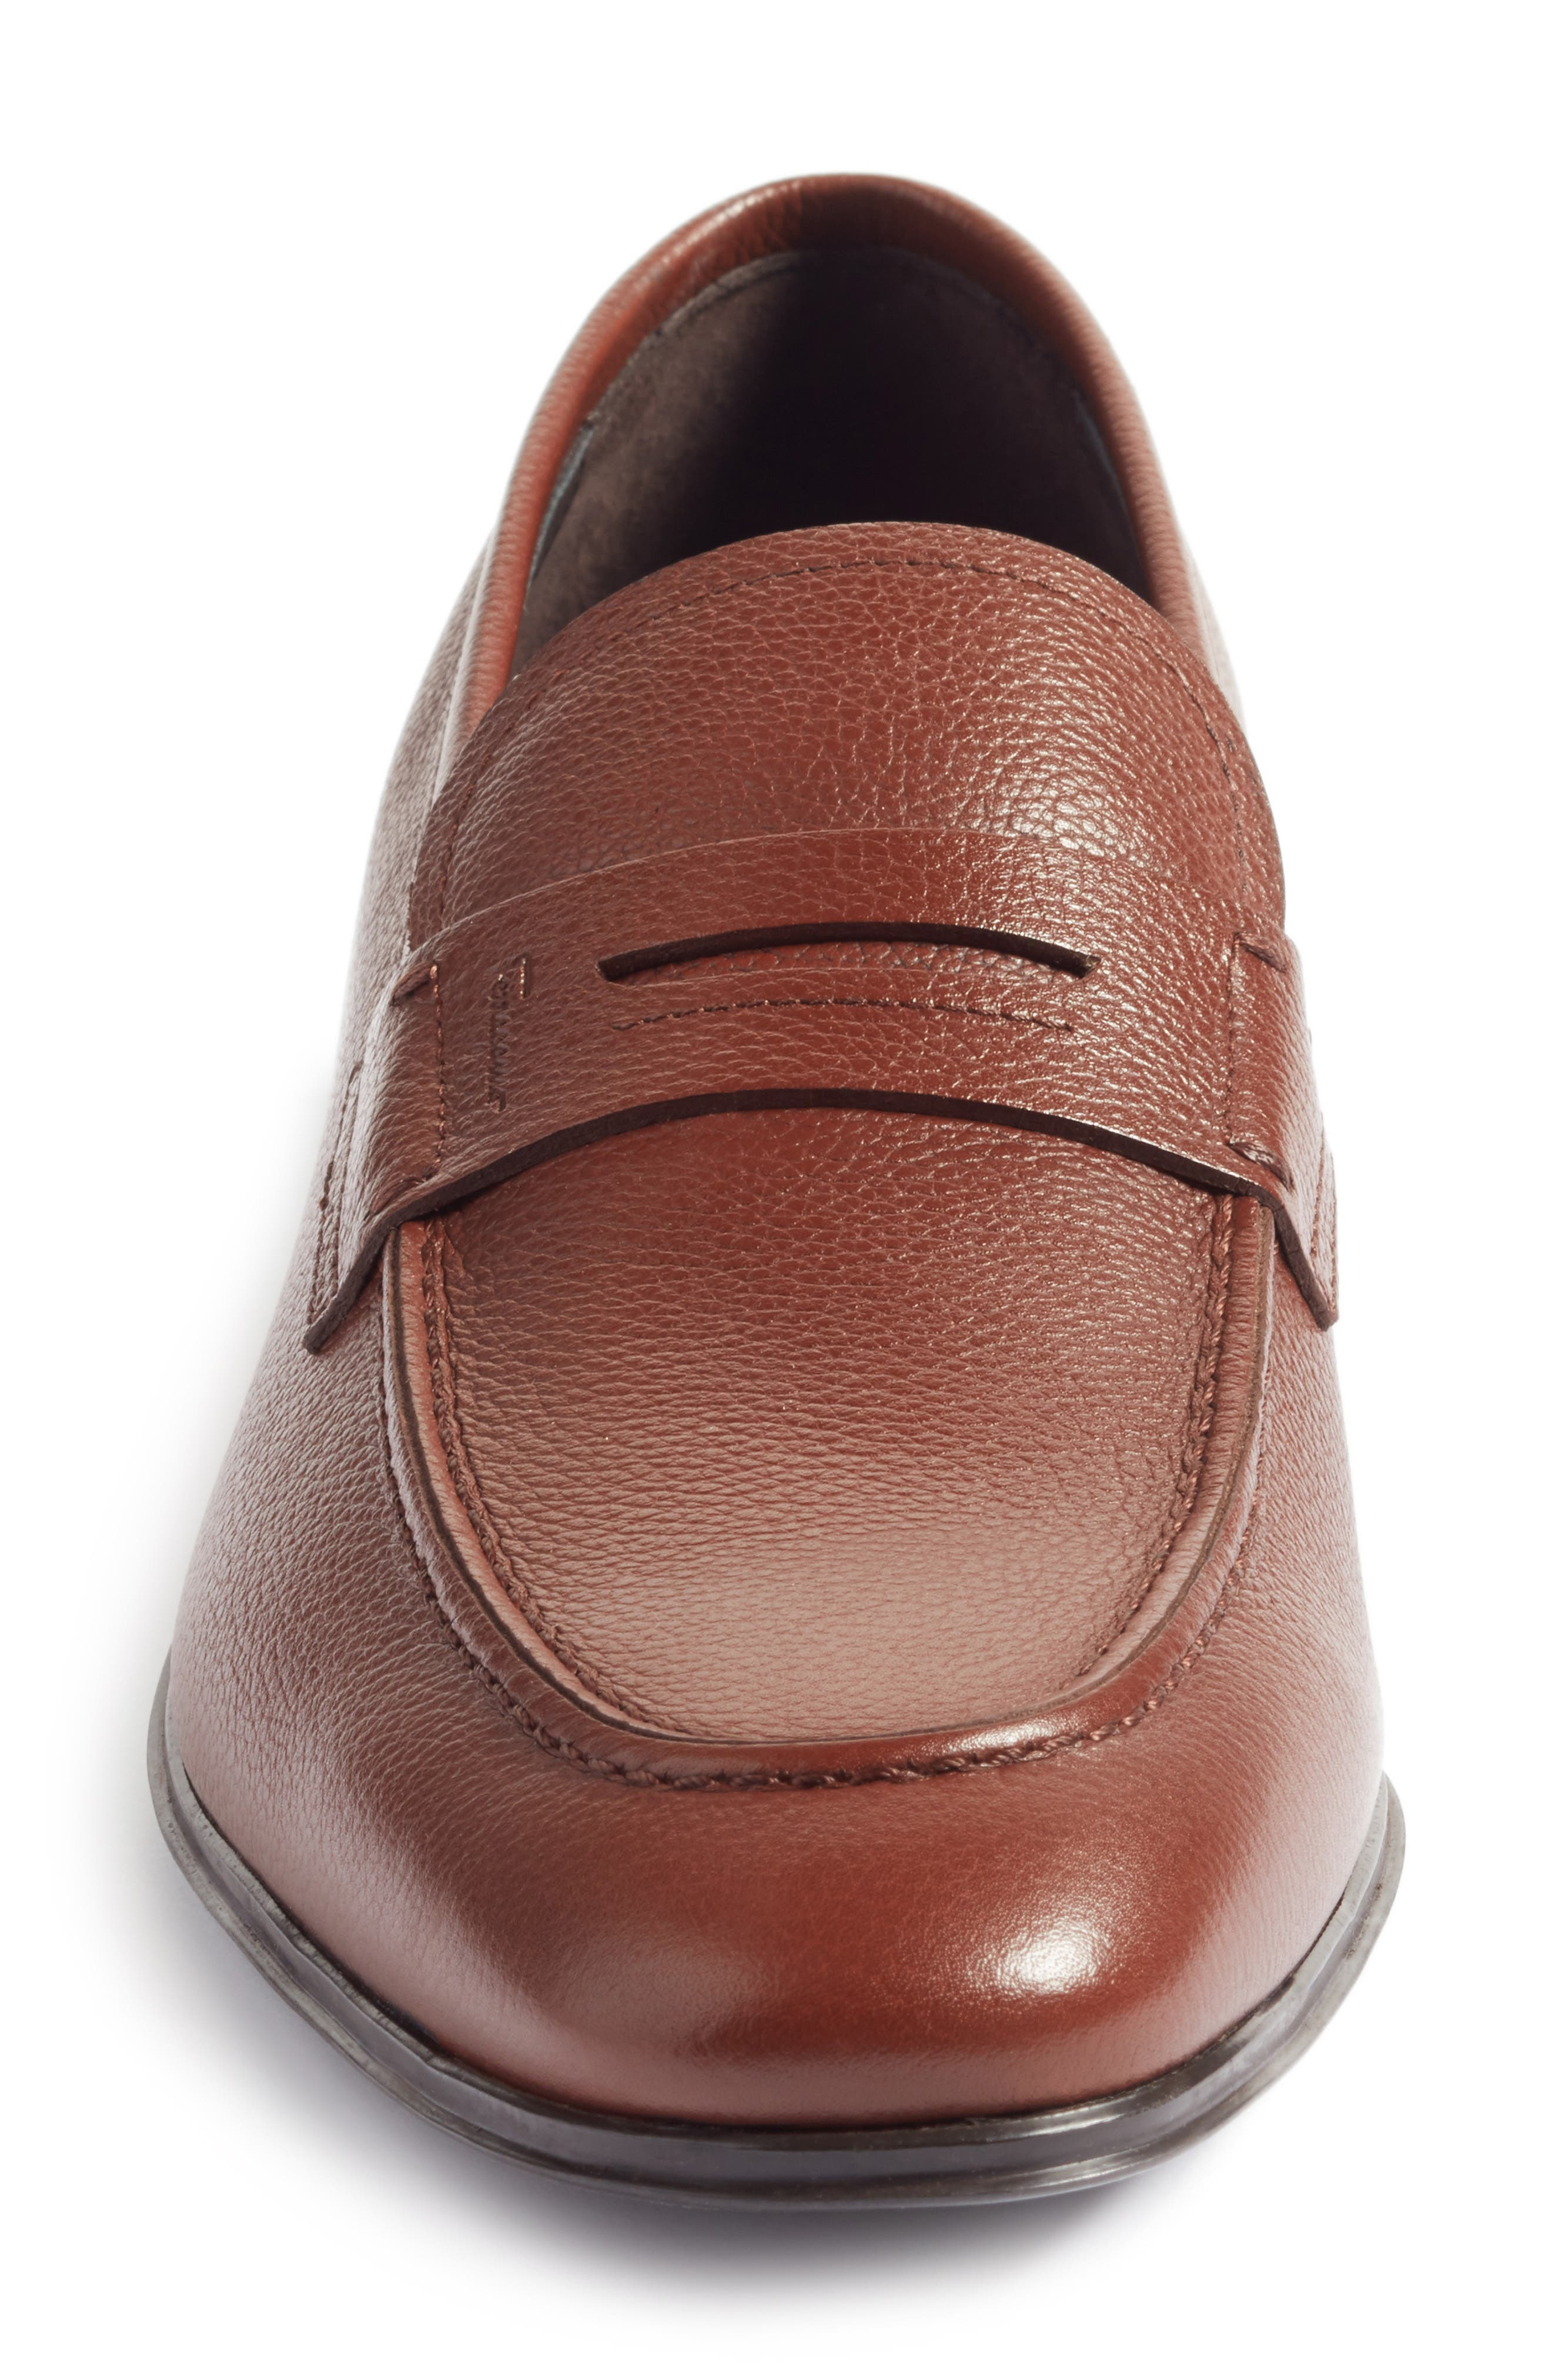 Fiorino 2 Penny Loafer,                             Alternate thumbnail 4, color,                             Dark Cuoio Leather